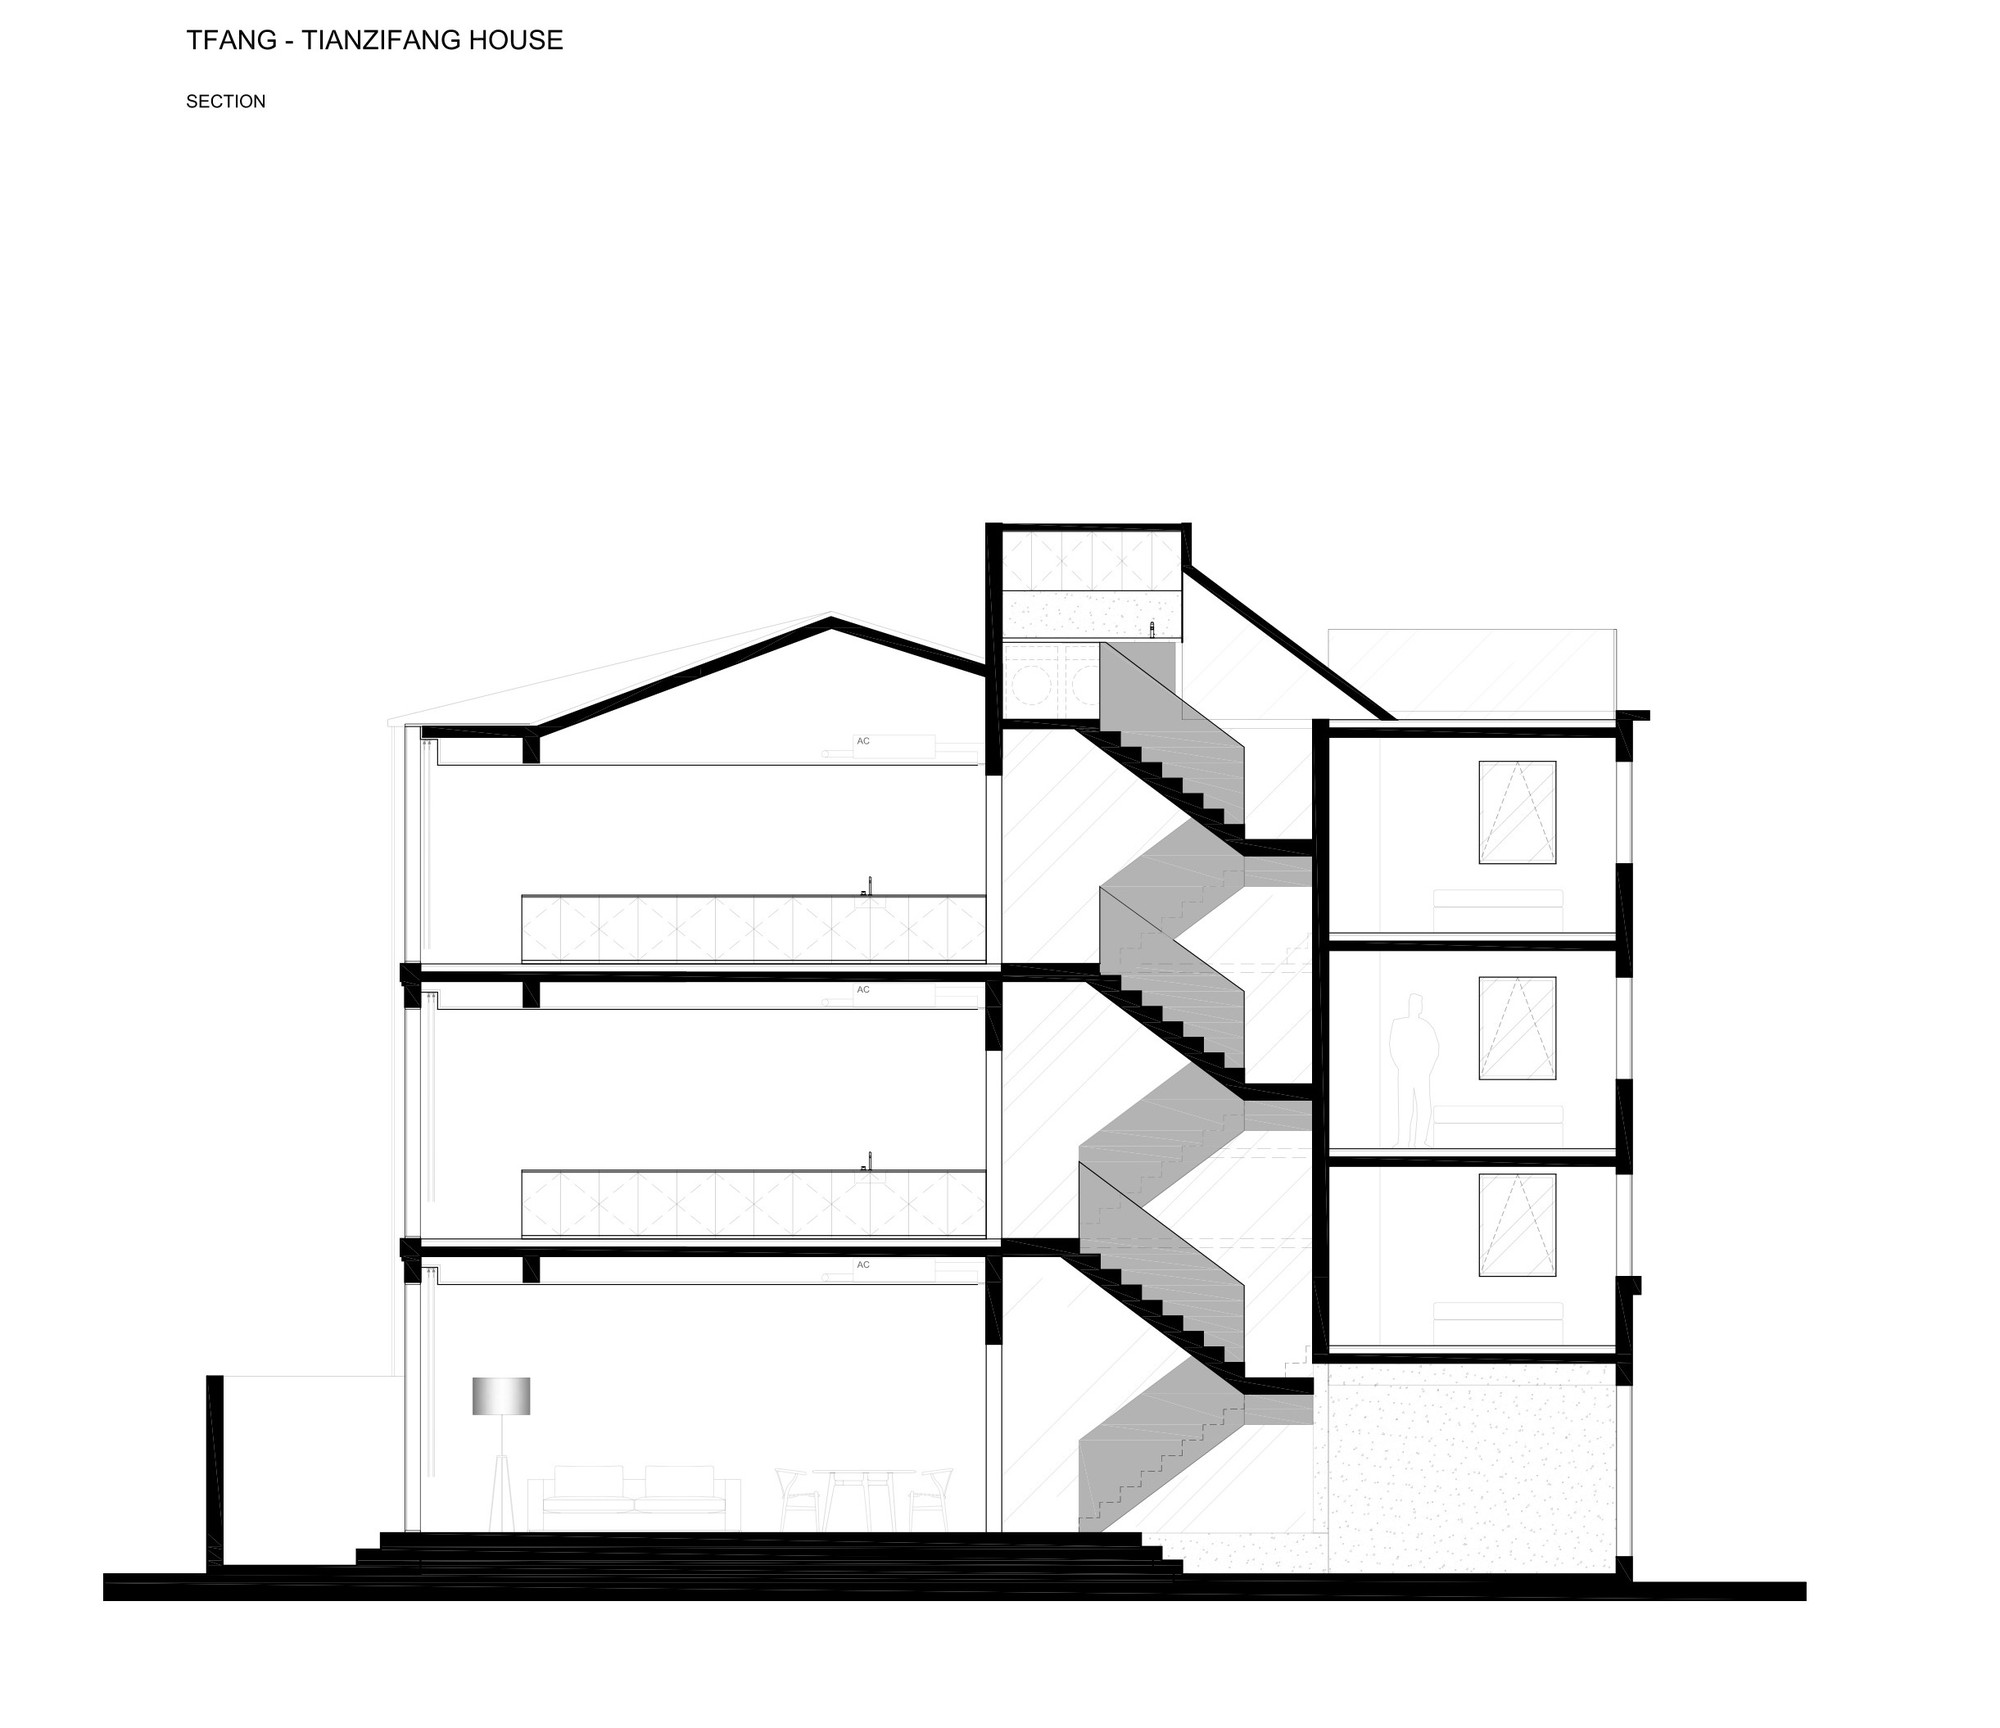 House design research - Rethinking The Split House Neri Hu Design And Research Office